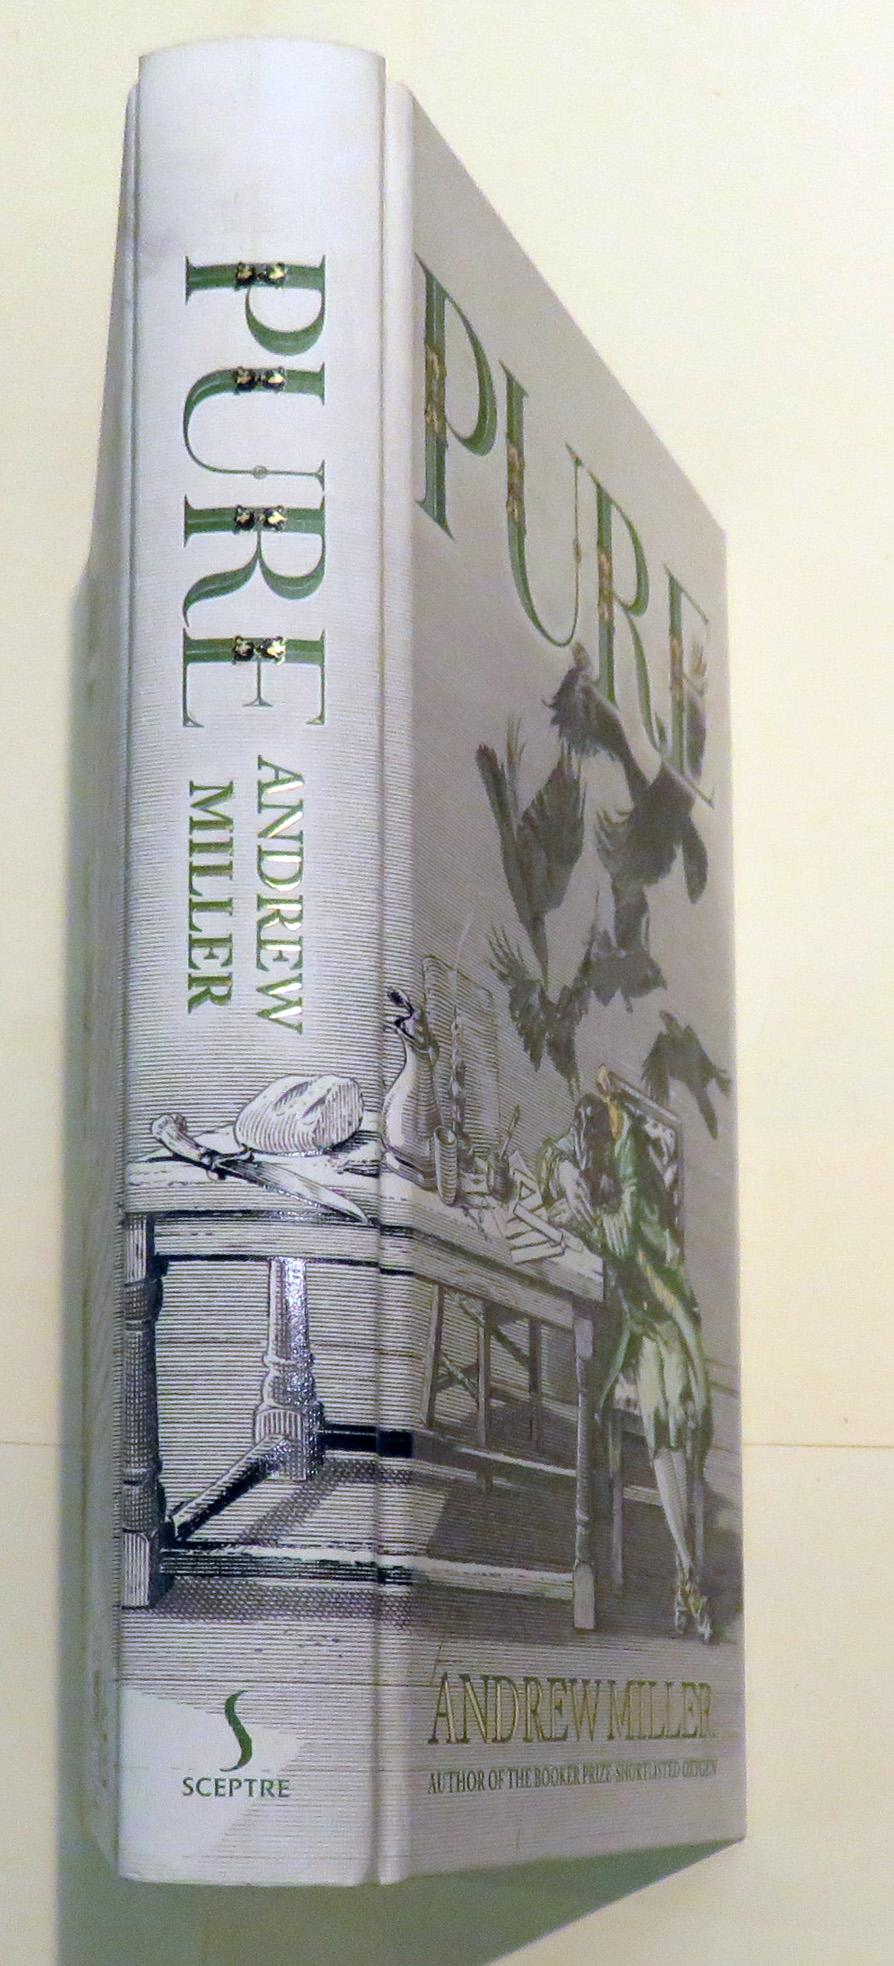 SIGNED Pure by Andrew Miller COSTA PRIZE WINNER